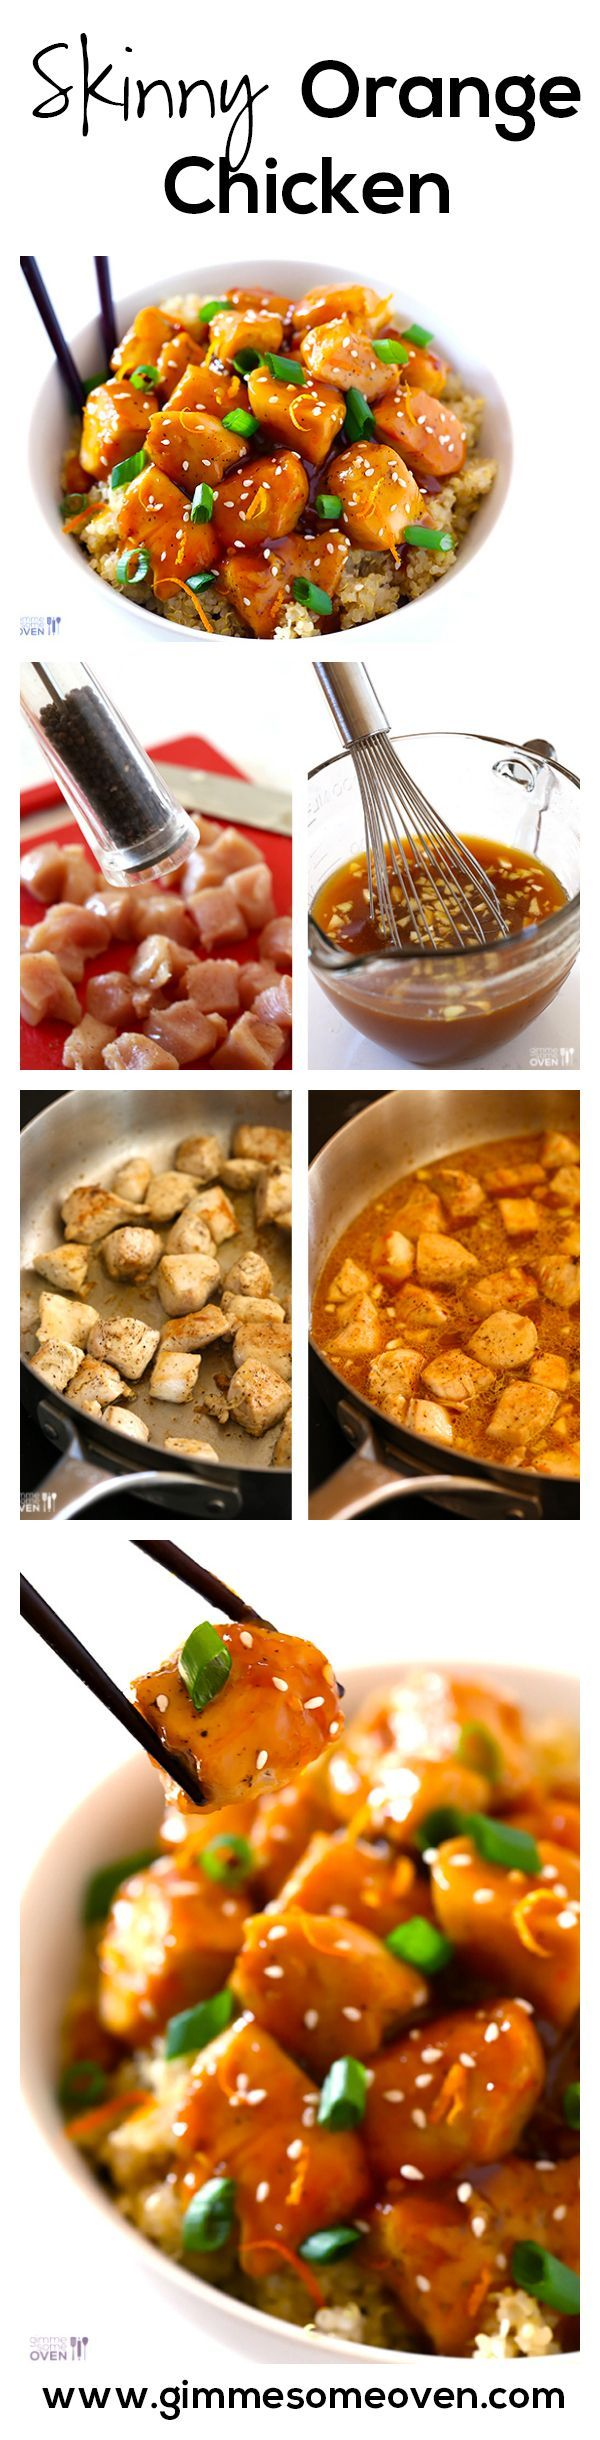 skinny orange chicken. made this tonight and it was so good! @Toni Boughner @Courtney Baker Voshell